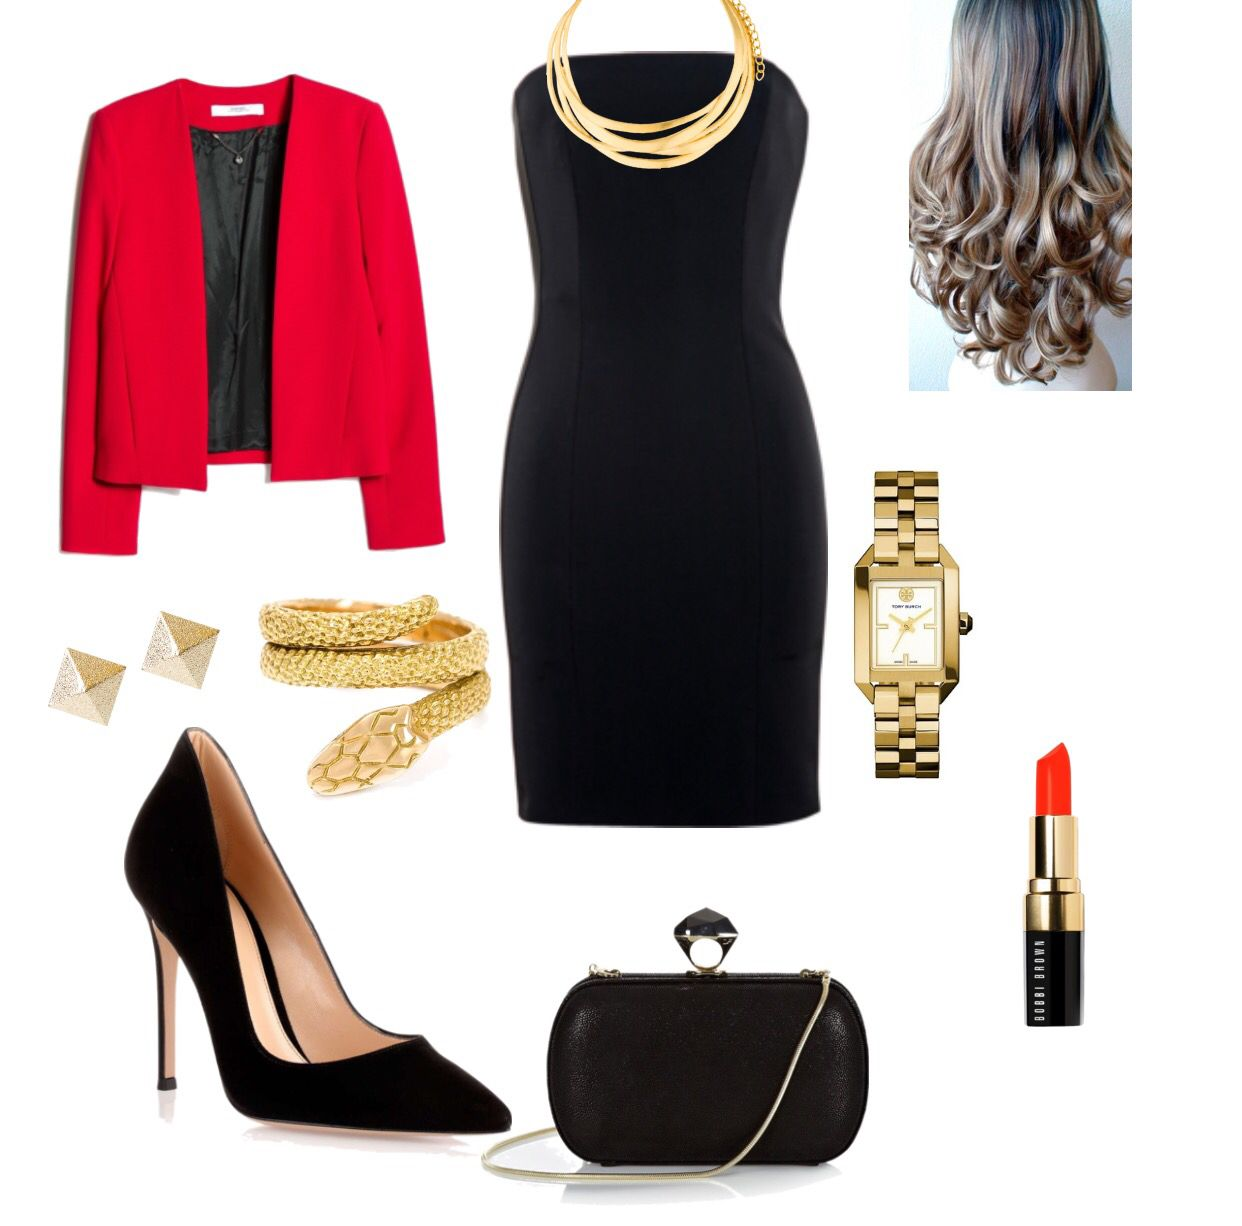 Black dress with red jacket